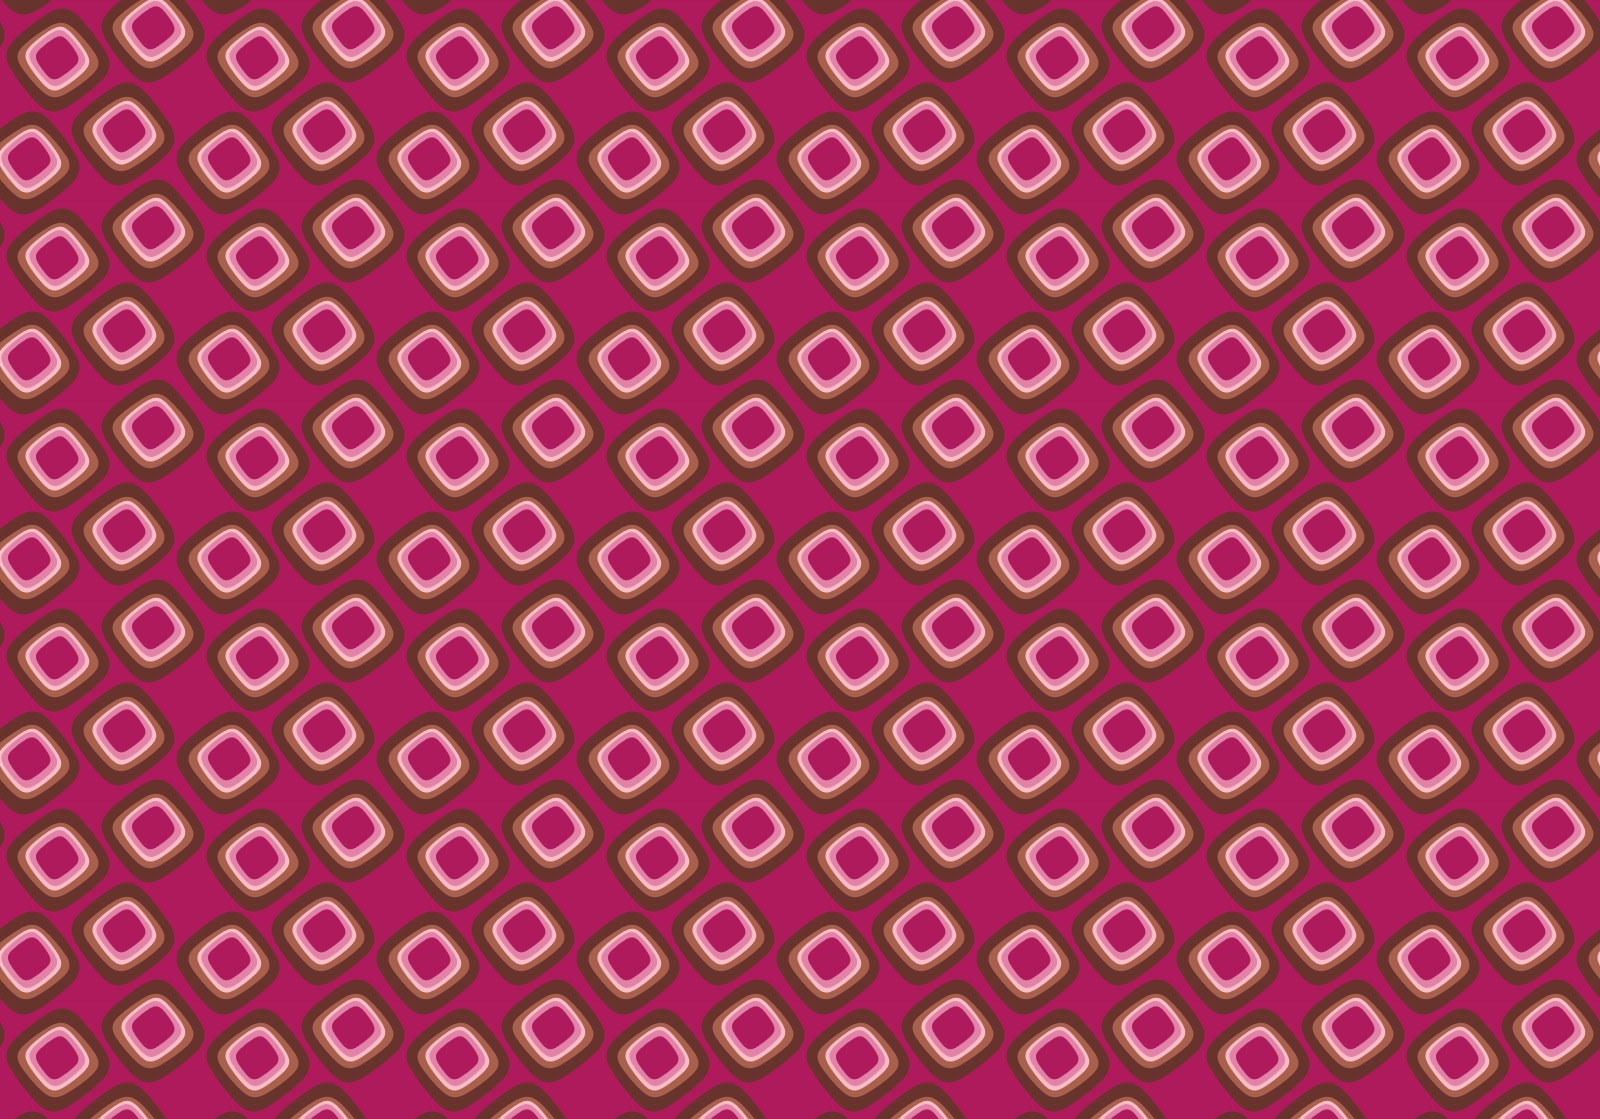 85246 download wallpaper Textures, Texture, Squares, Pictures, Lots Of, Multitude, Background screensavers and pictures for free